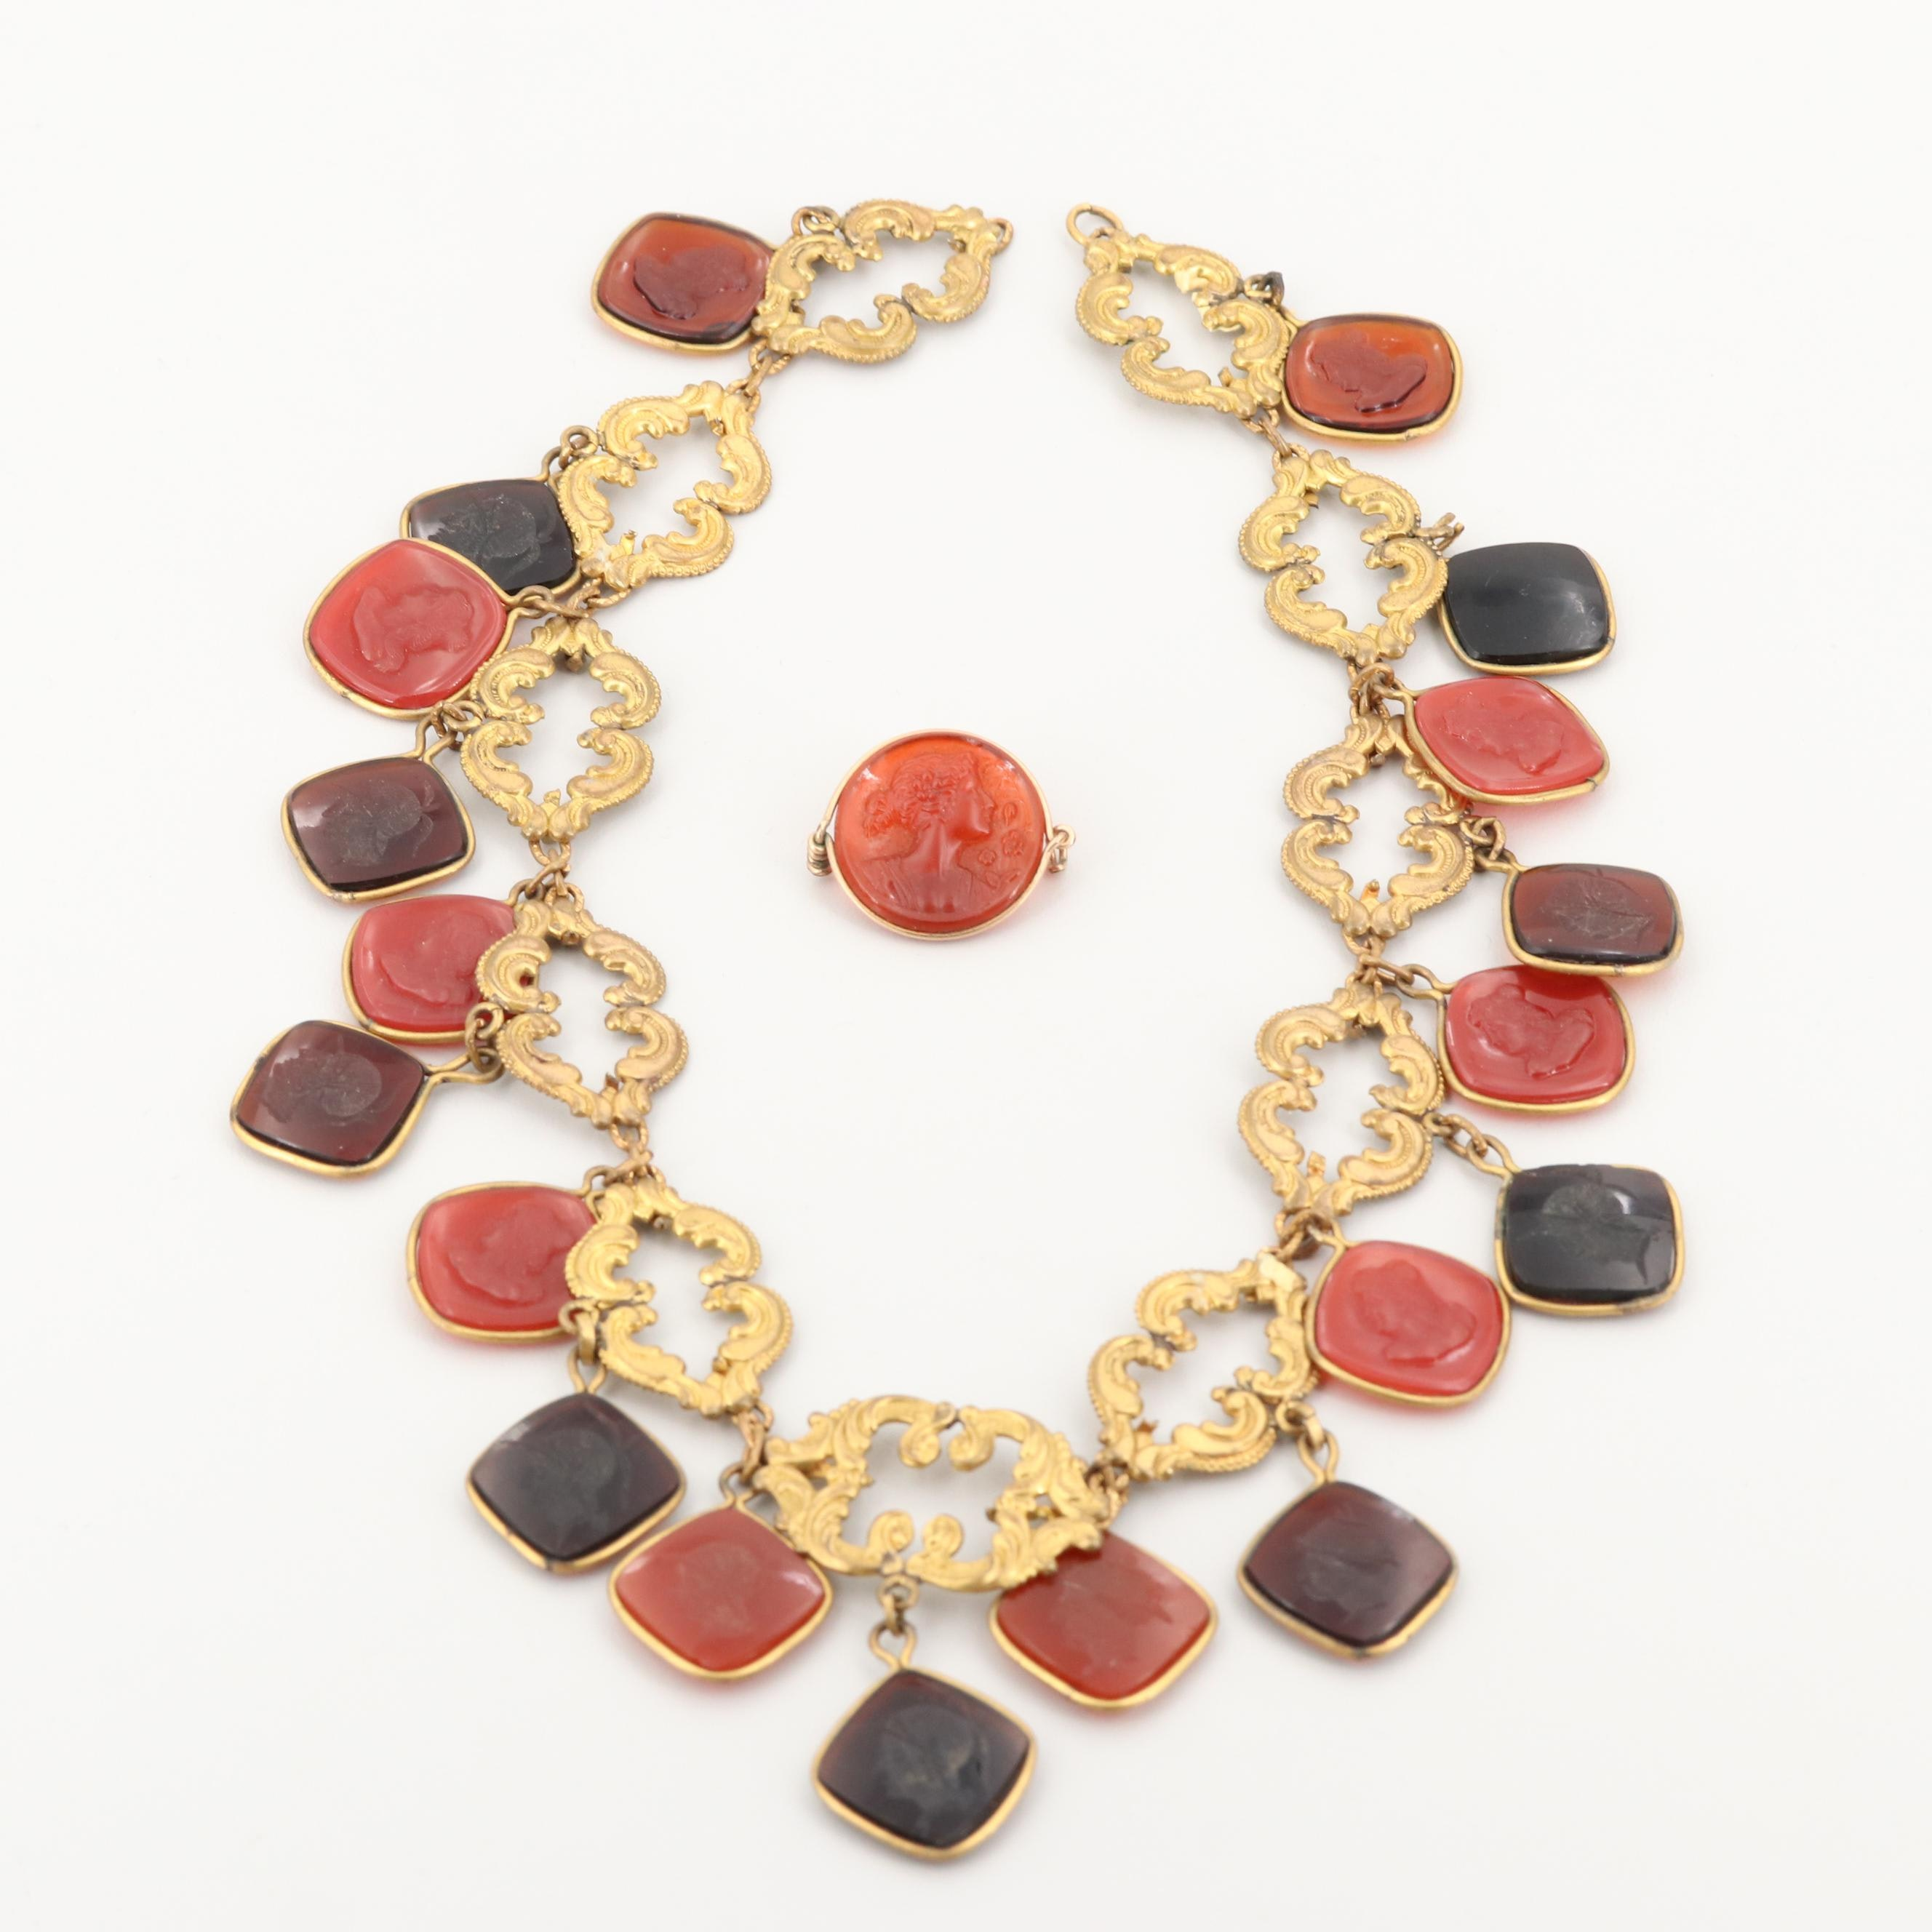 Glass Intaglio and Scroll Motif Link Necklace